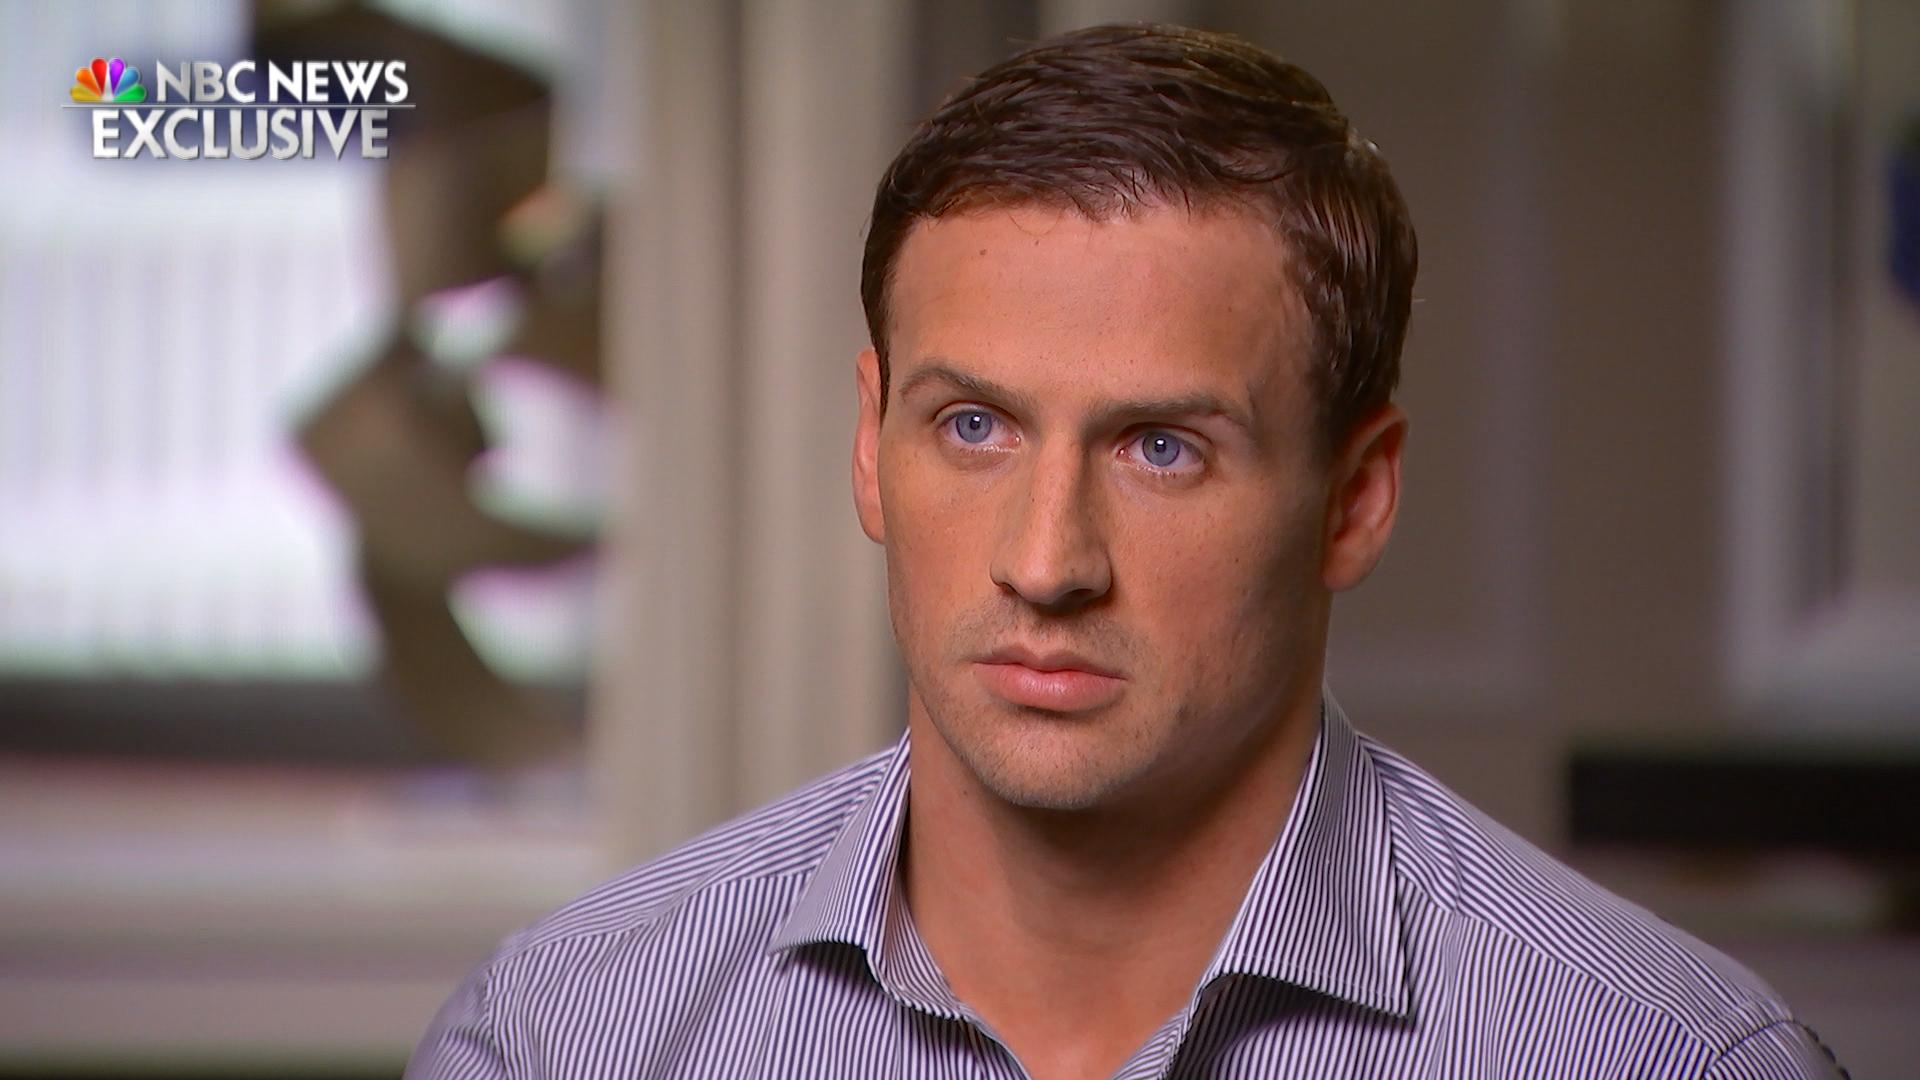 Ryan Lochte On Rio Incident I Over Exaggerated That Story